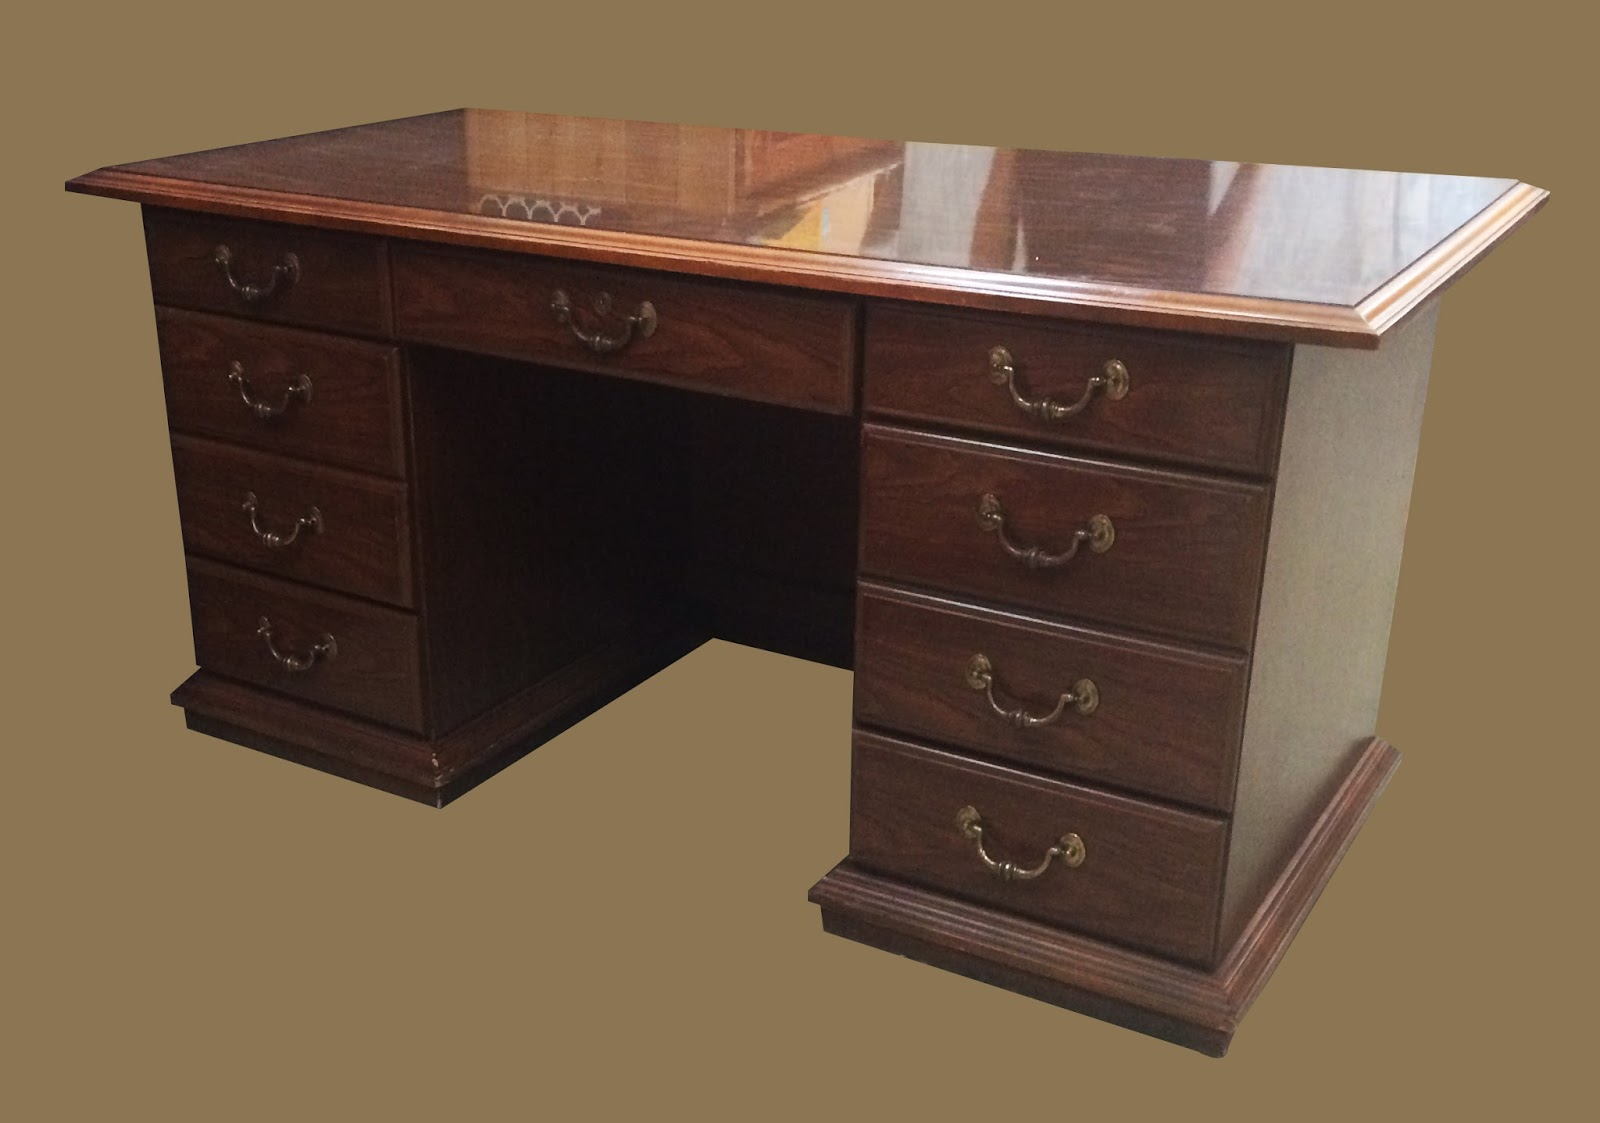 Uhuru furniture collectibles office desk with locking